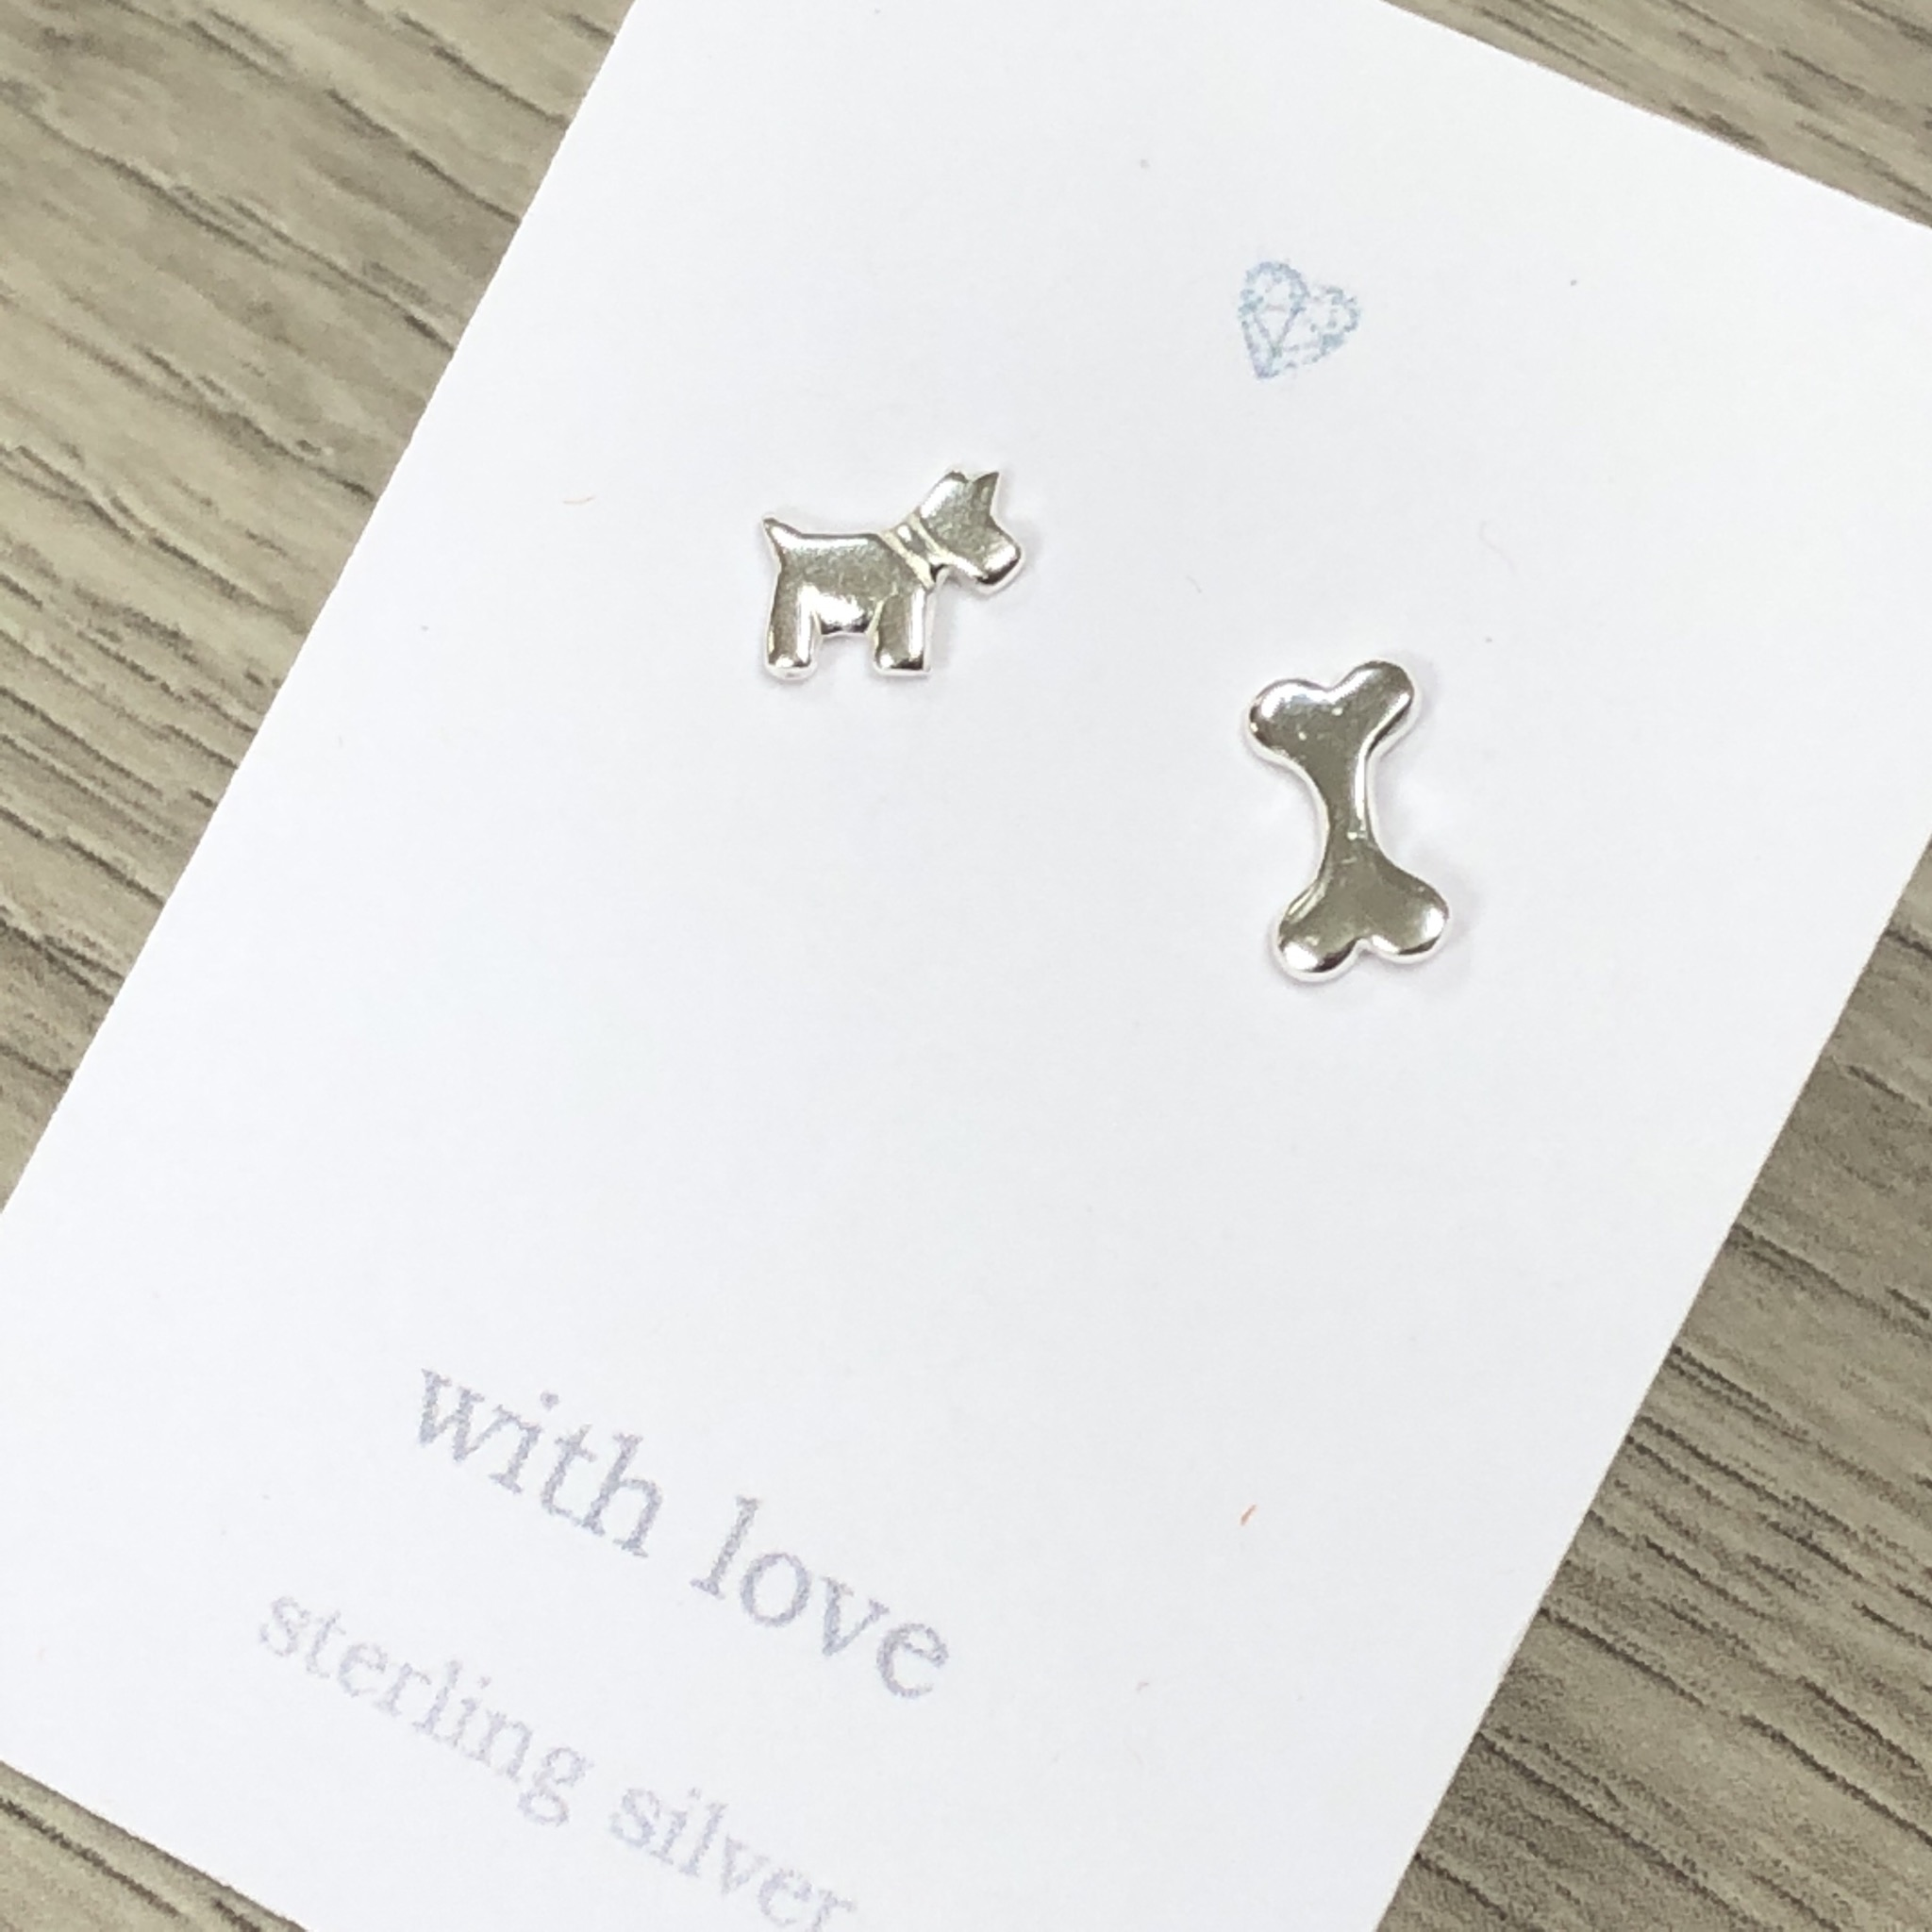 Dog and bone sterling silver stud earrings